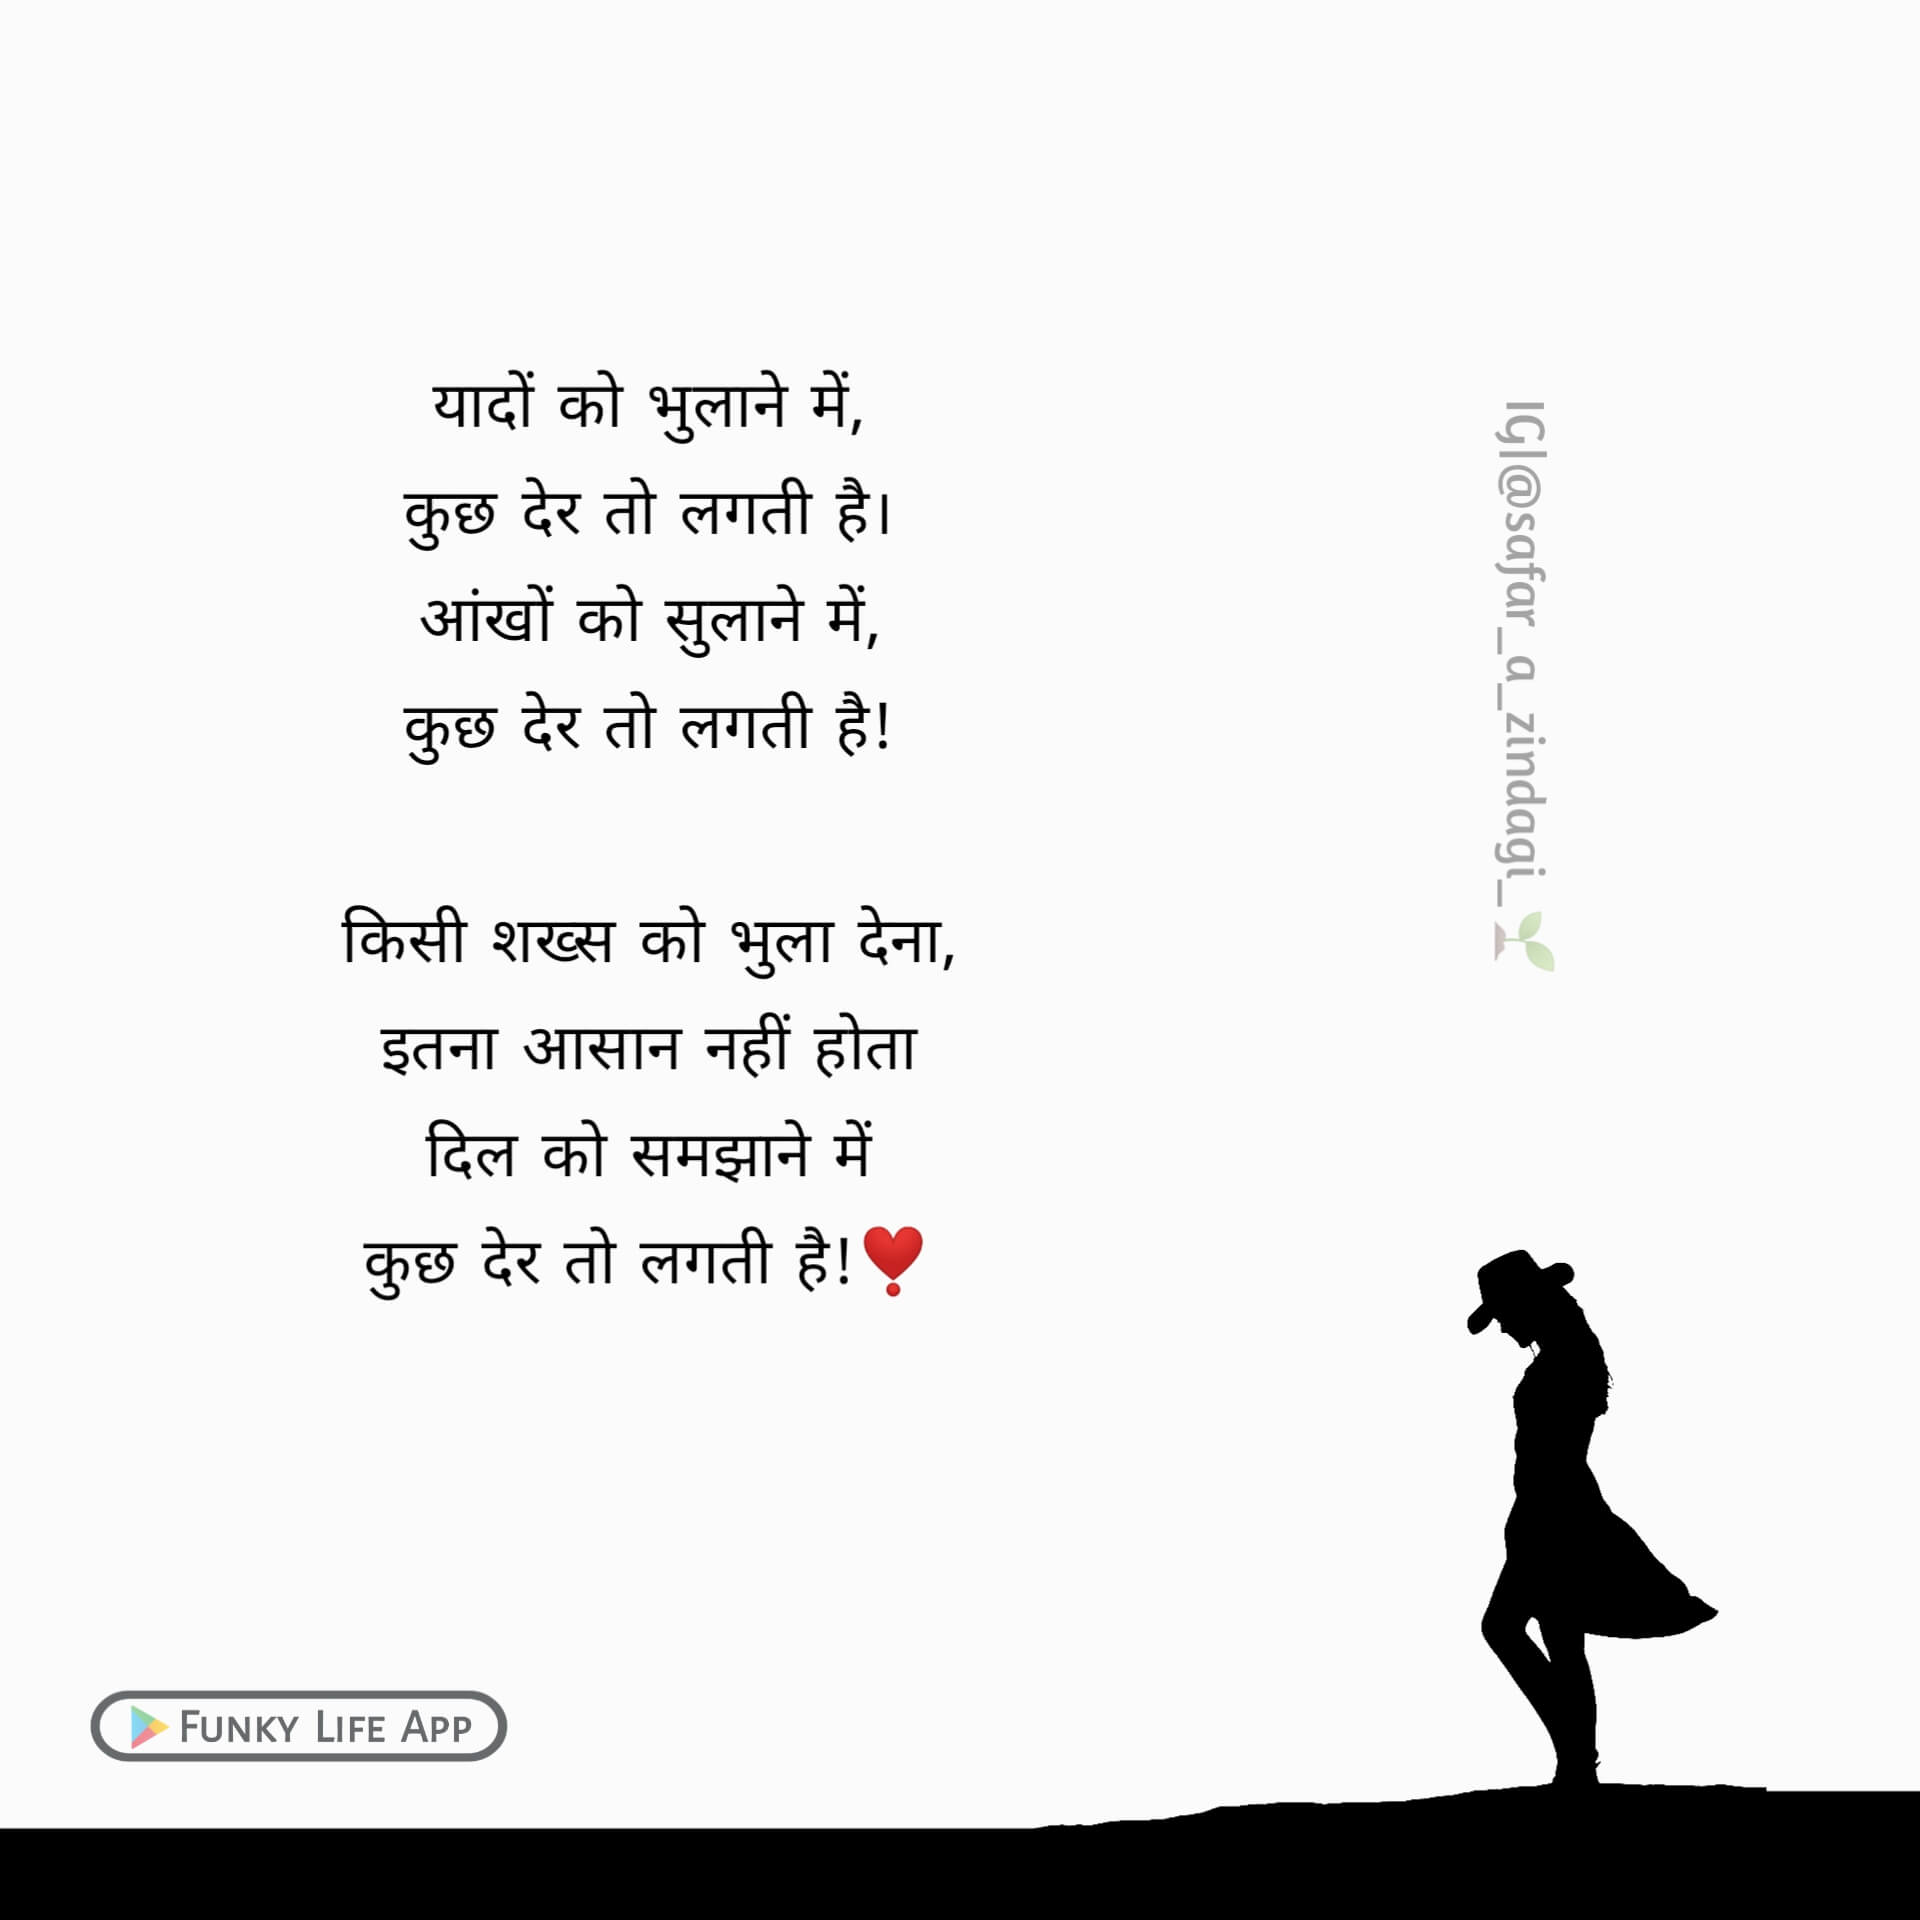 Hindi Poetry Hindi Kavita Funky Life 26